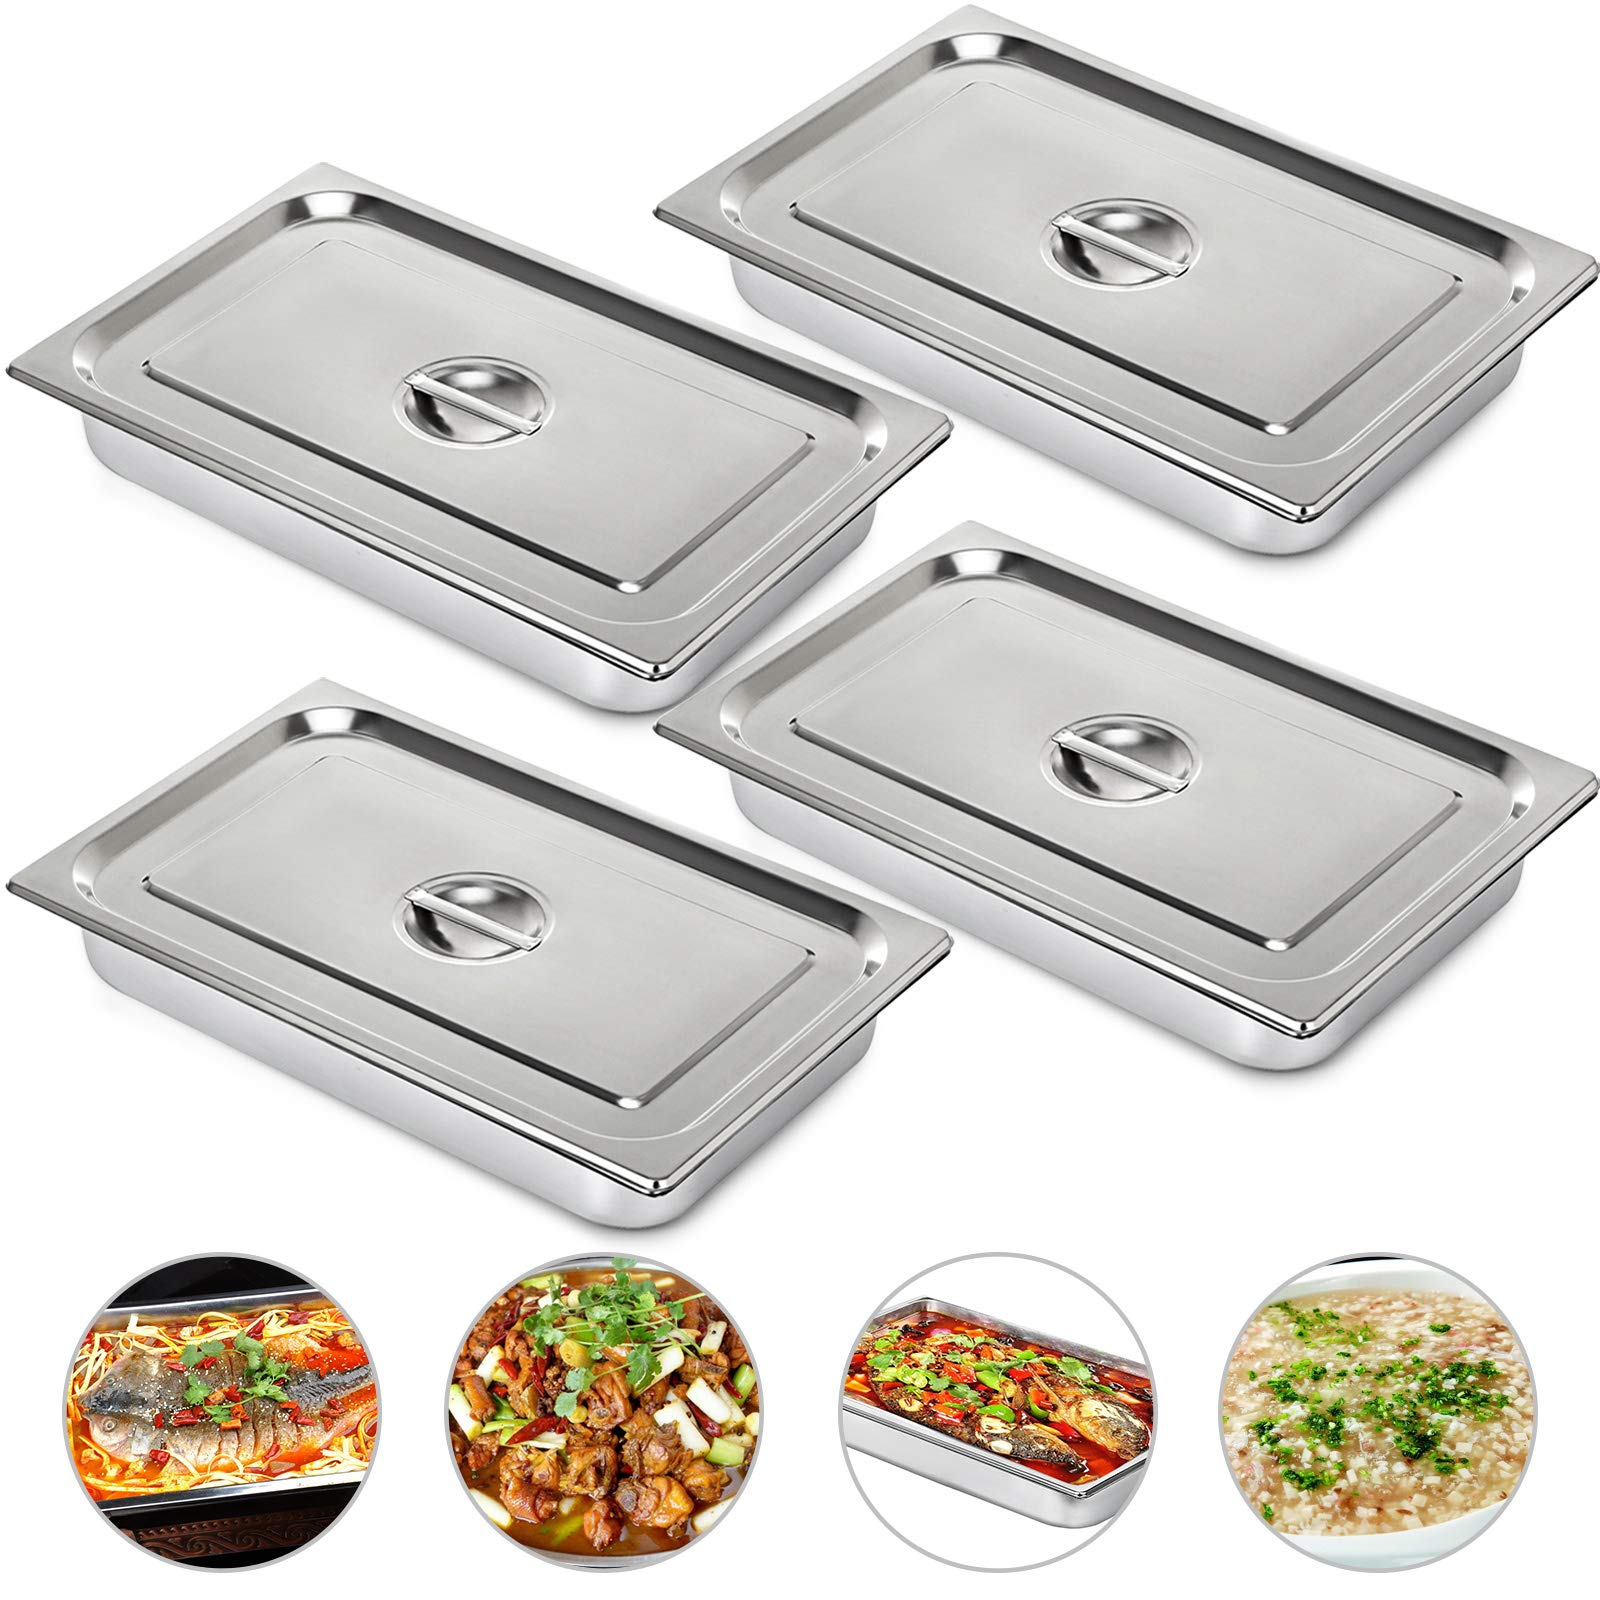 Mophorn 4 Inch Deep Steam Table Pan Full Size with Lid 13.7 Quart Stainless Steel Anti Jam Steam Table Pan Set of 4 Food Pans by Mophorn